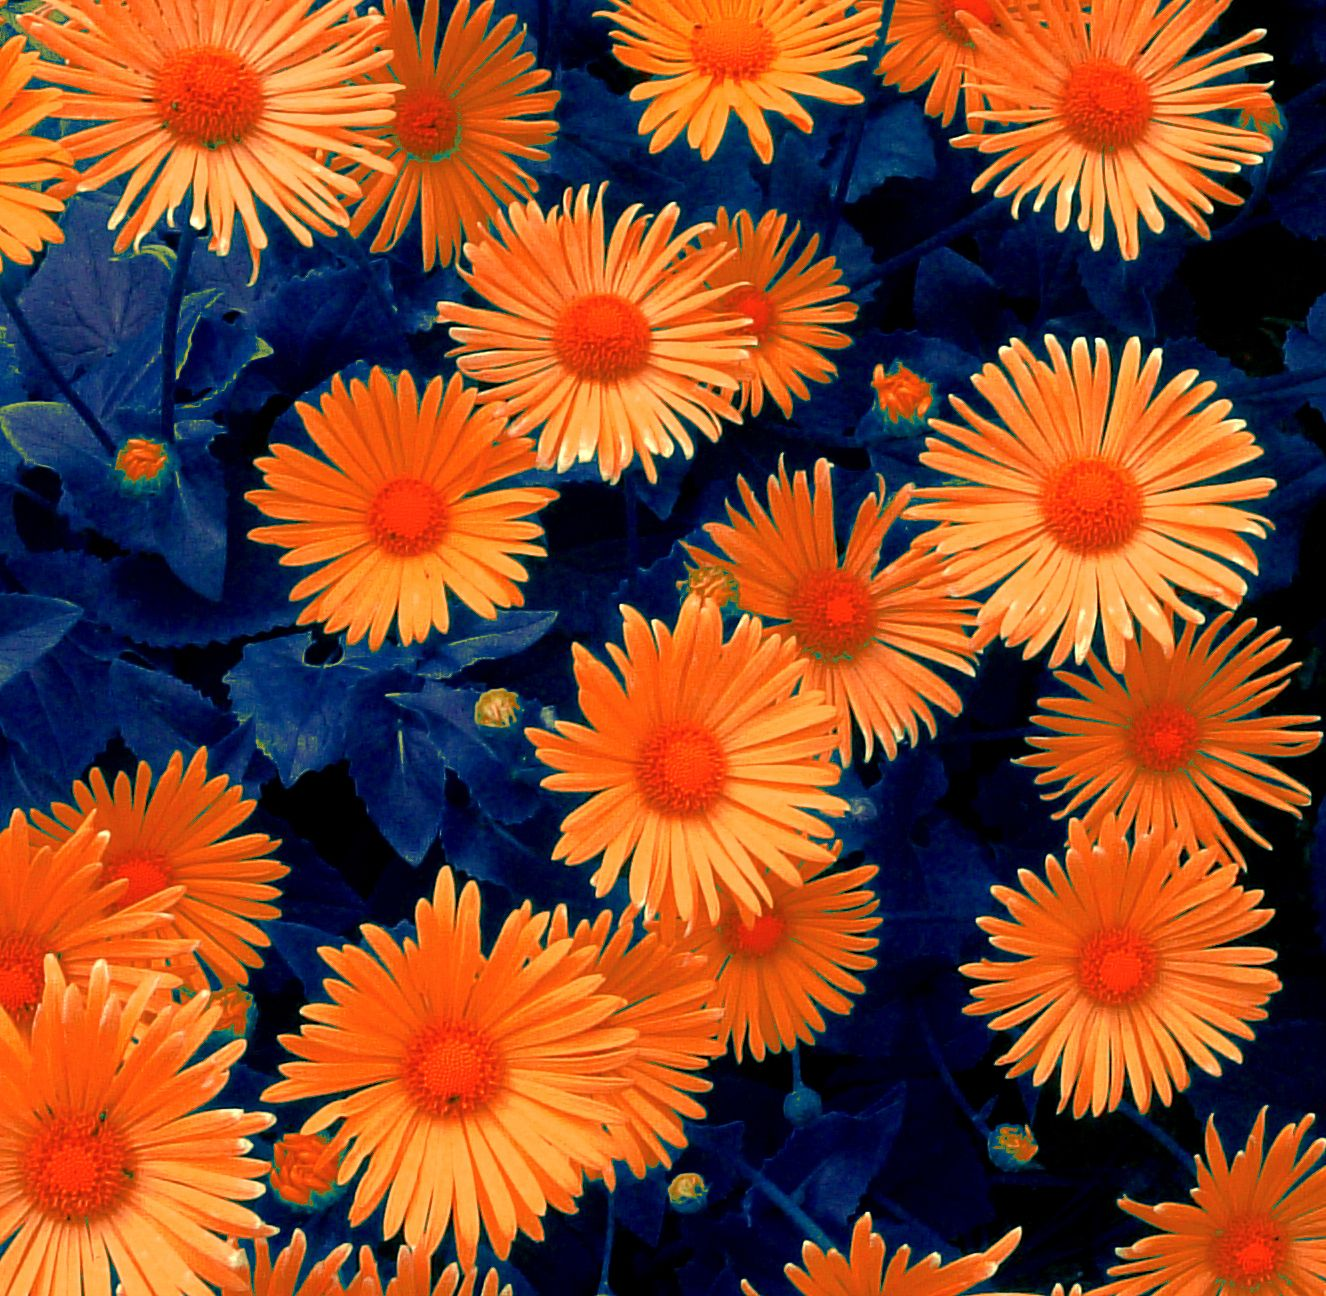 Image detail for -Orange and Blue